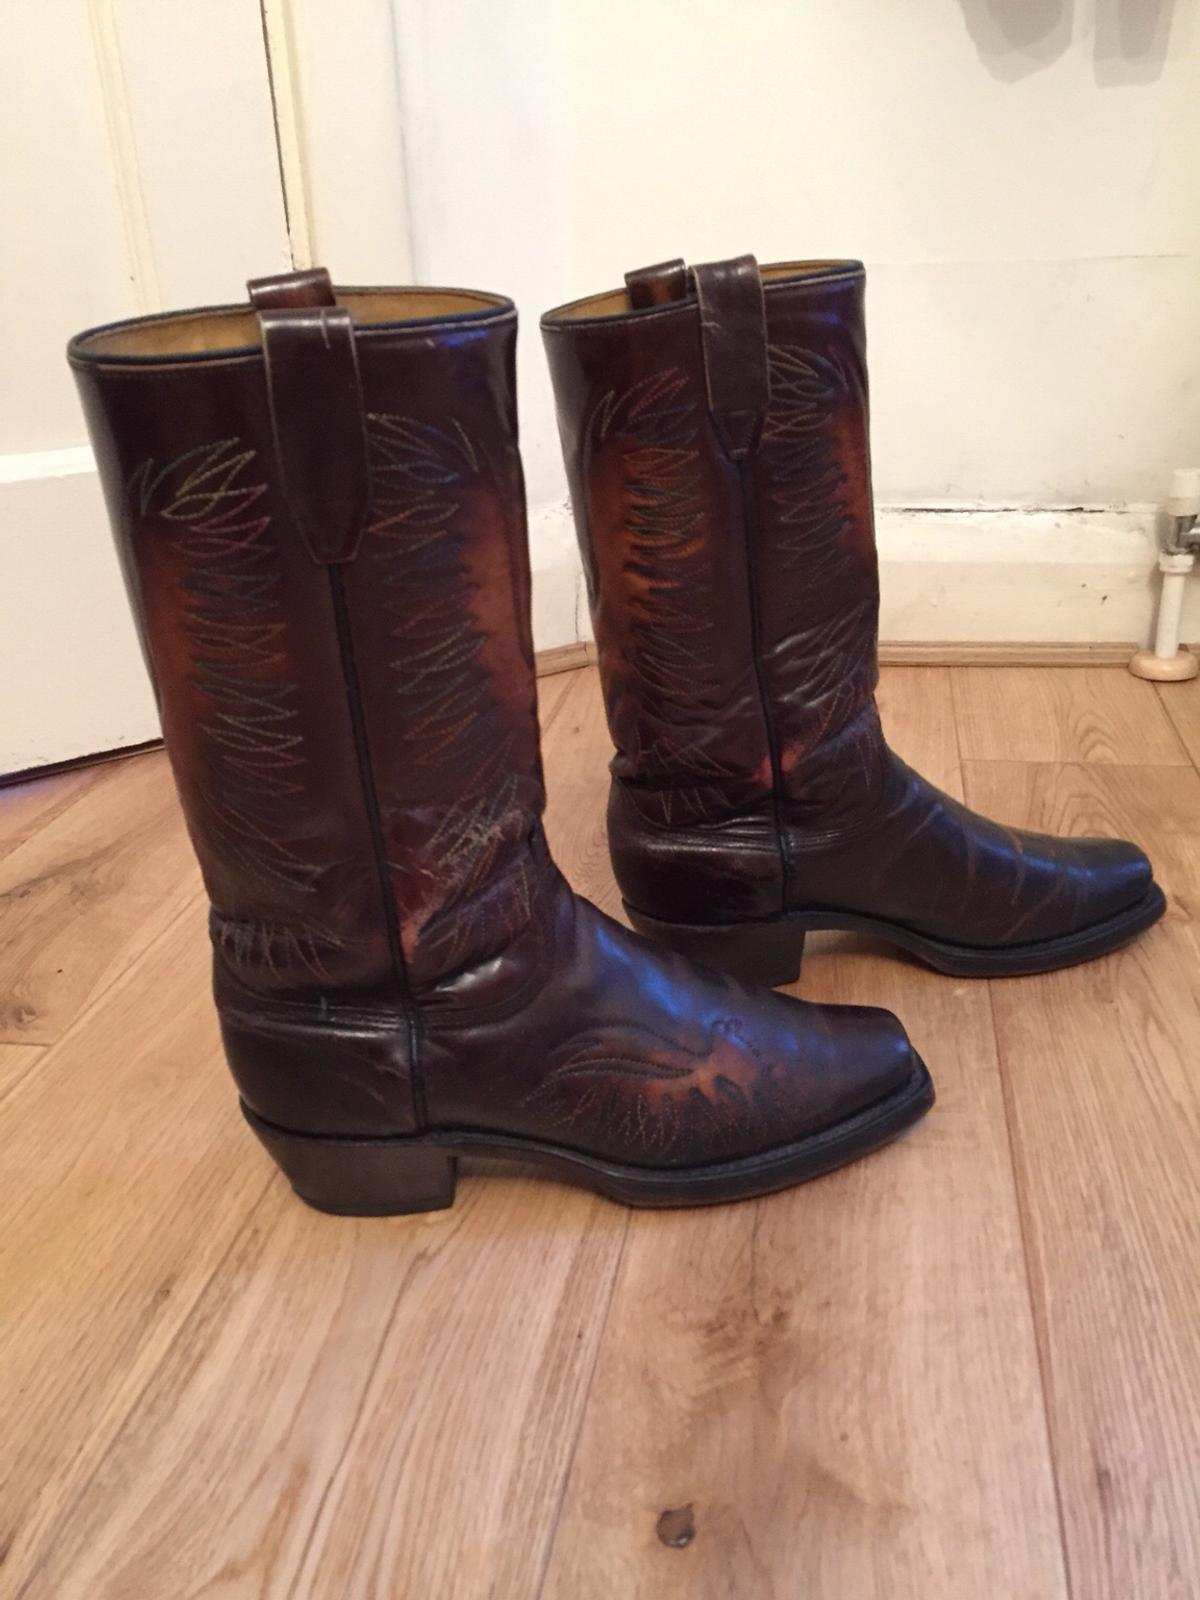 71da2f8ba2b Wrangler' Cowboy Boots US size 7.5 D in NW11 Barnet for £65.00 for ...